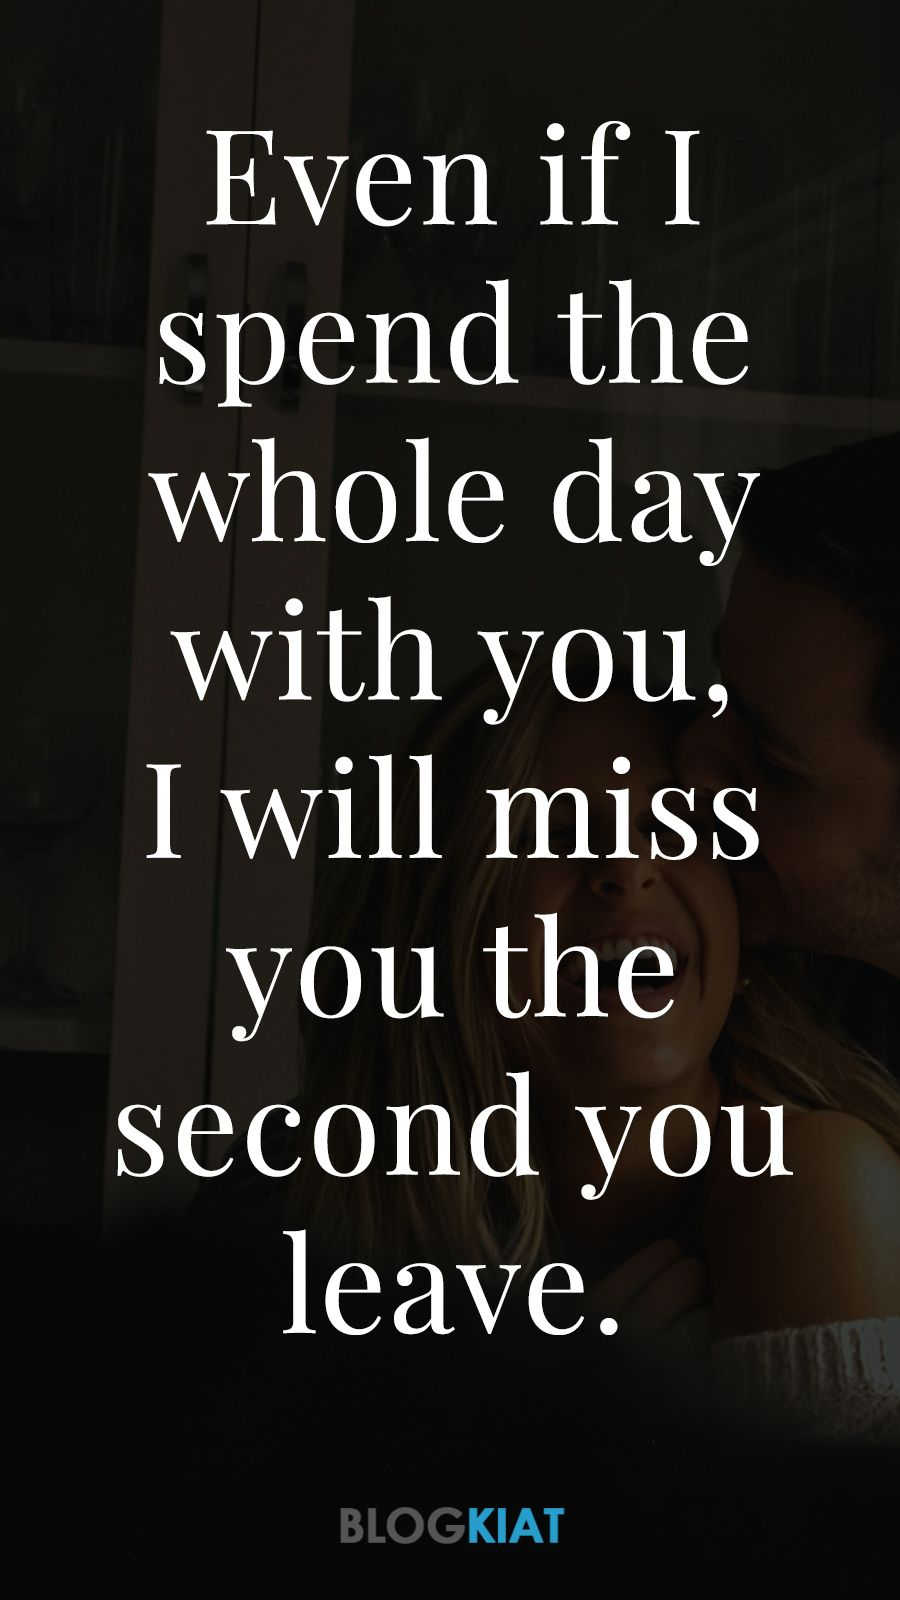 I Miss You Quotes: 6+ Cute & Best Missing You Quotes  Be